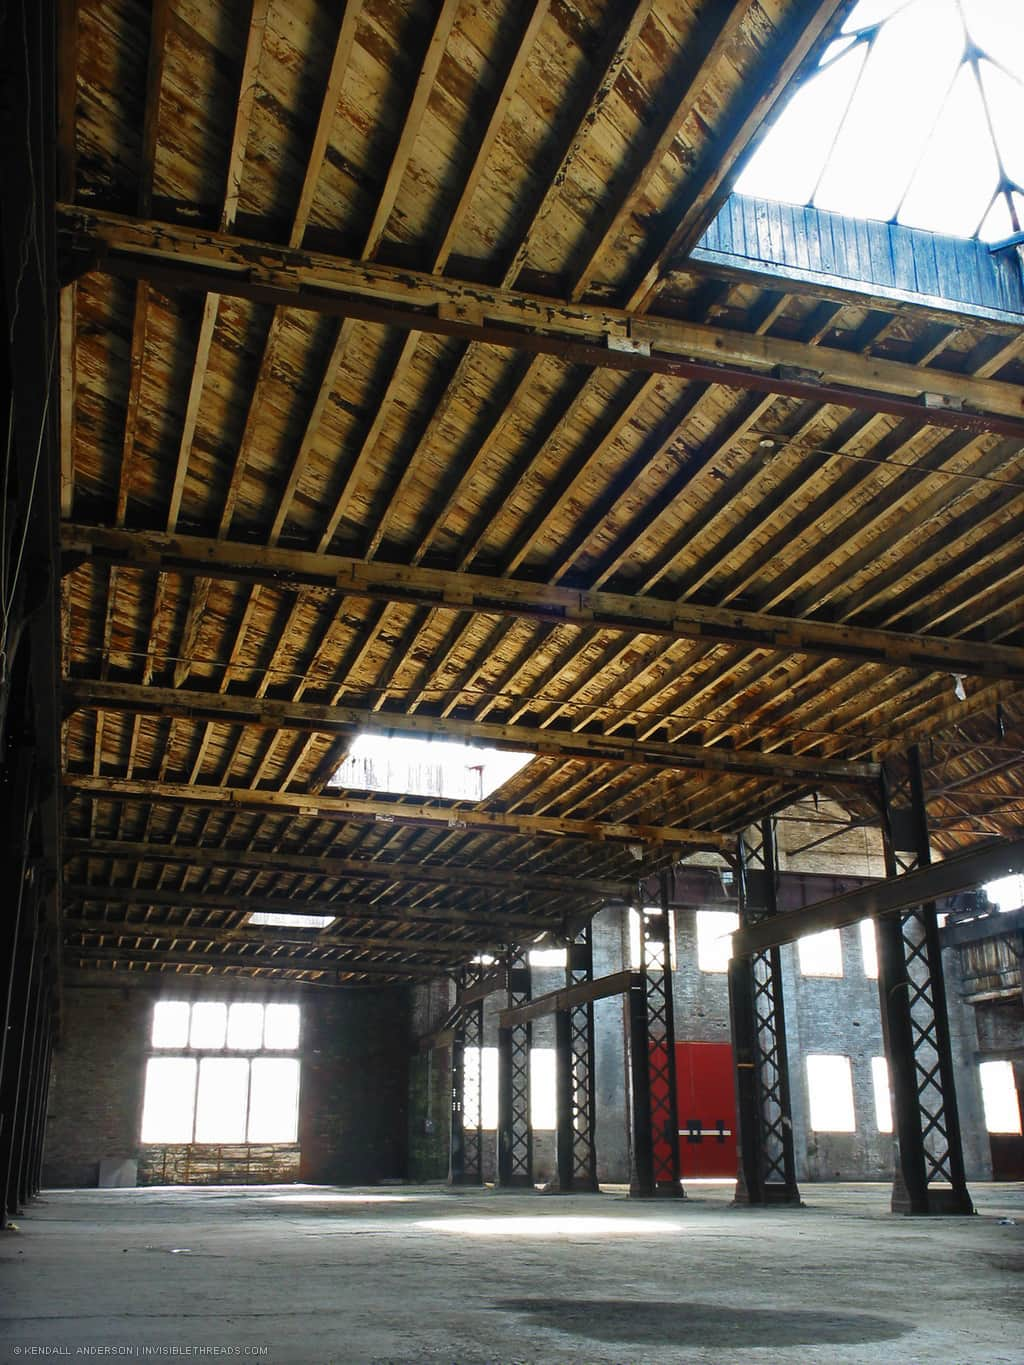 Wood joists holding up ceiling of industrial warehouse, with skylights